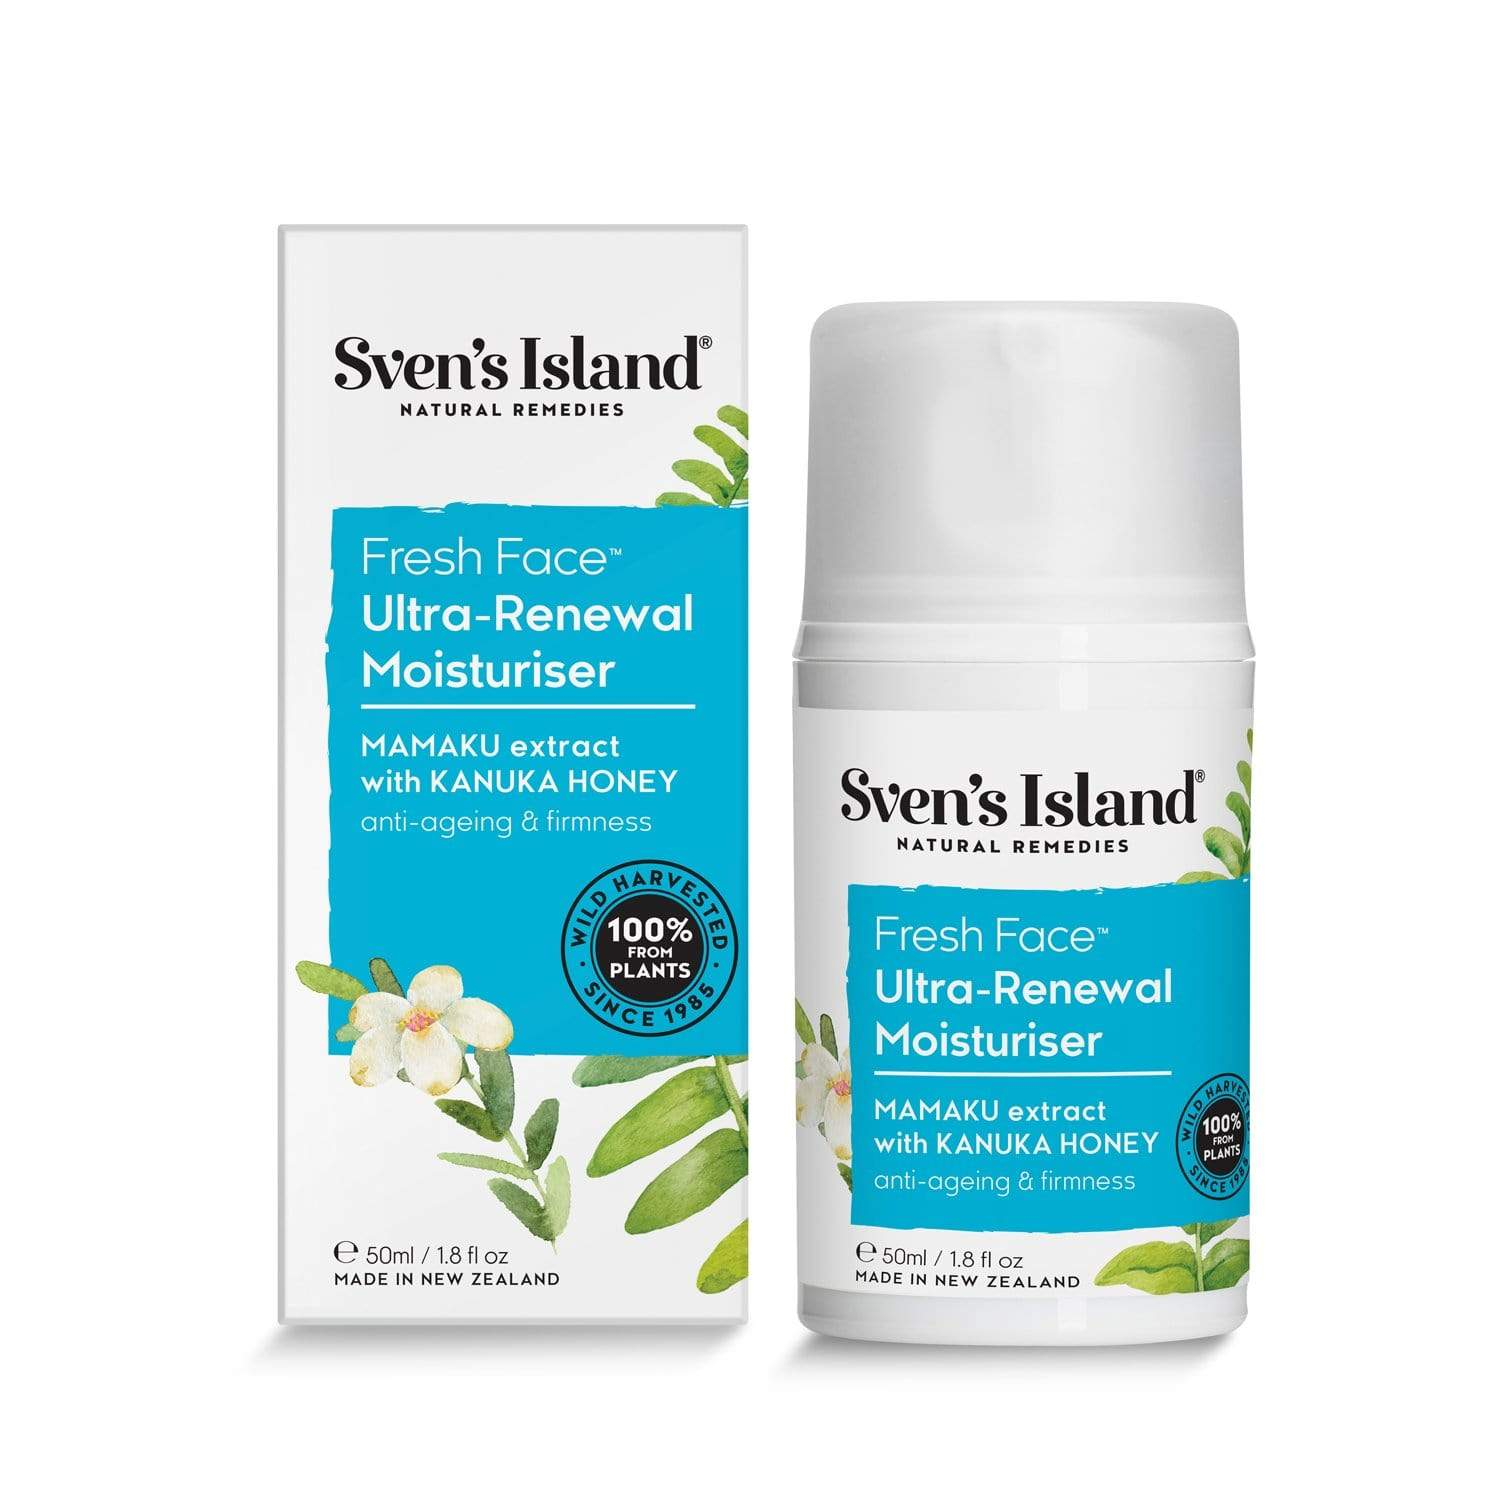 Svens Islands Award winning Fresh Face Ultra renewal Moisturiser